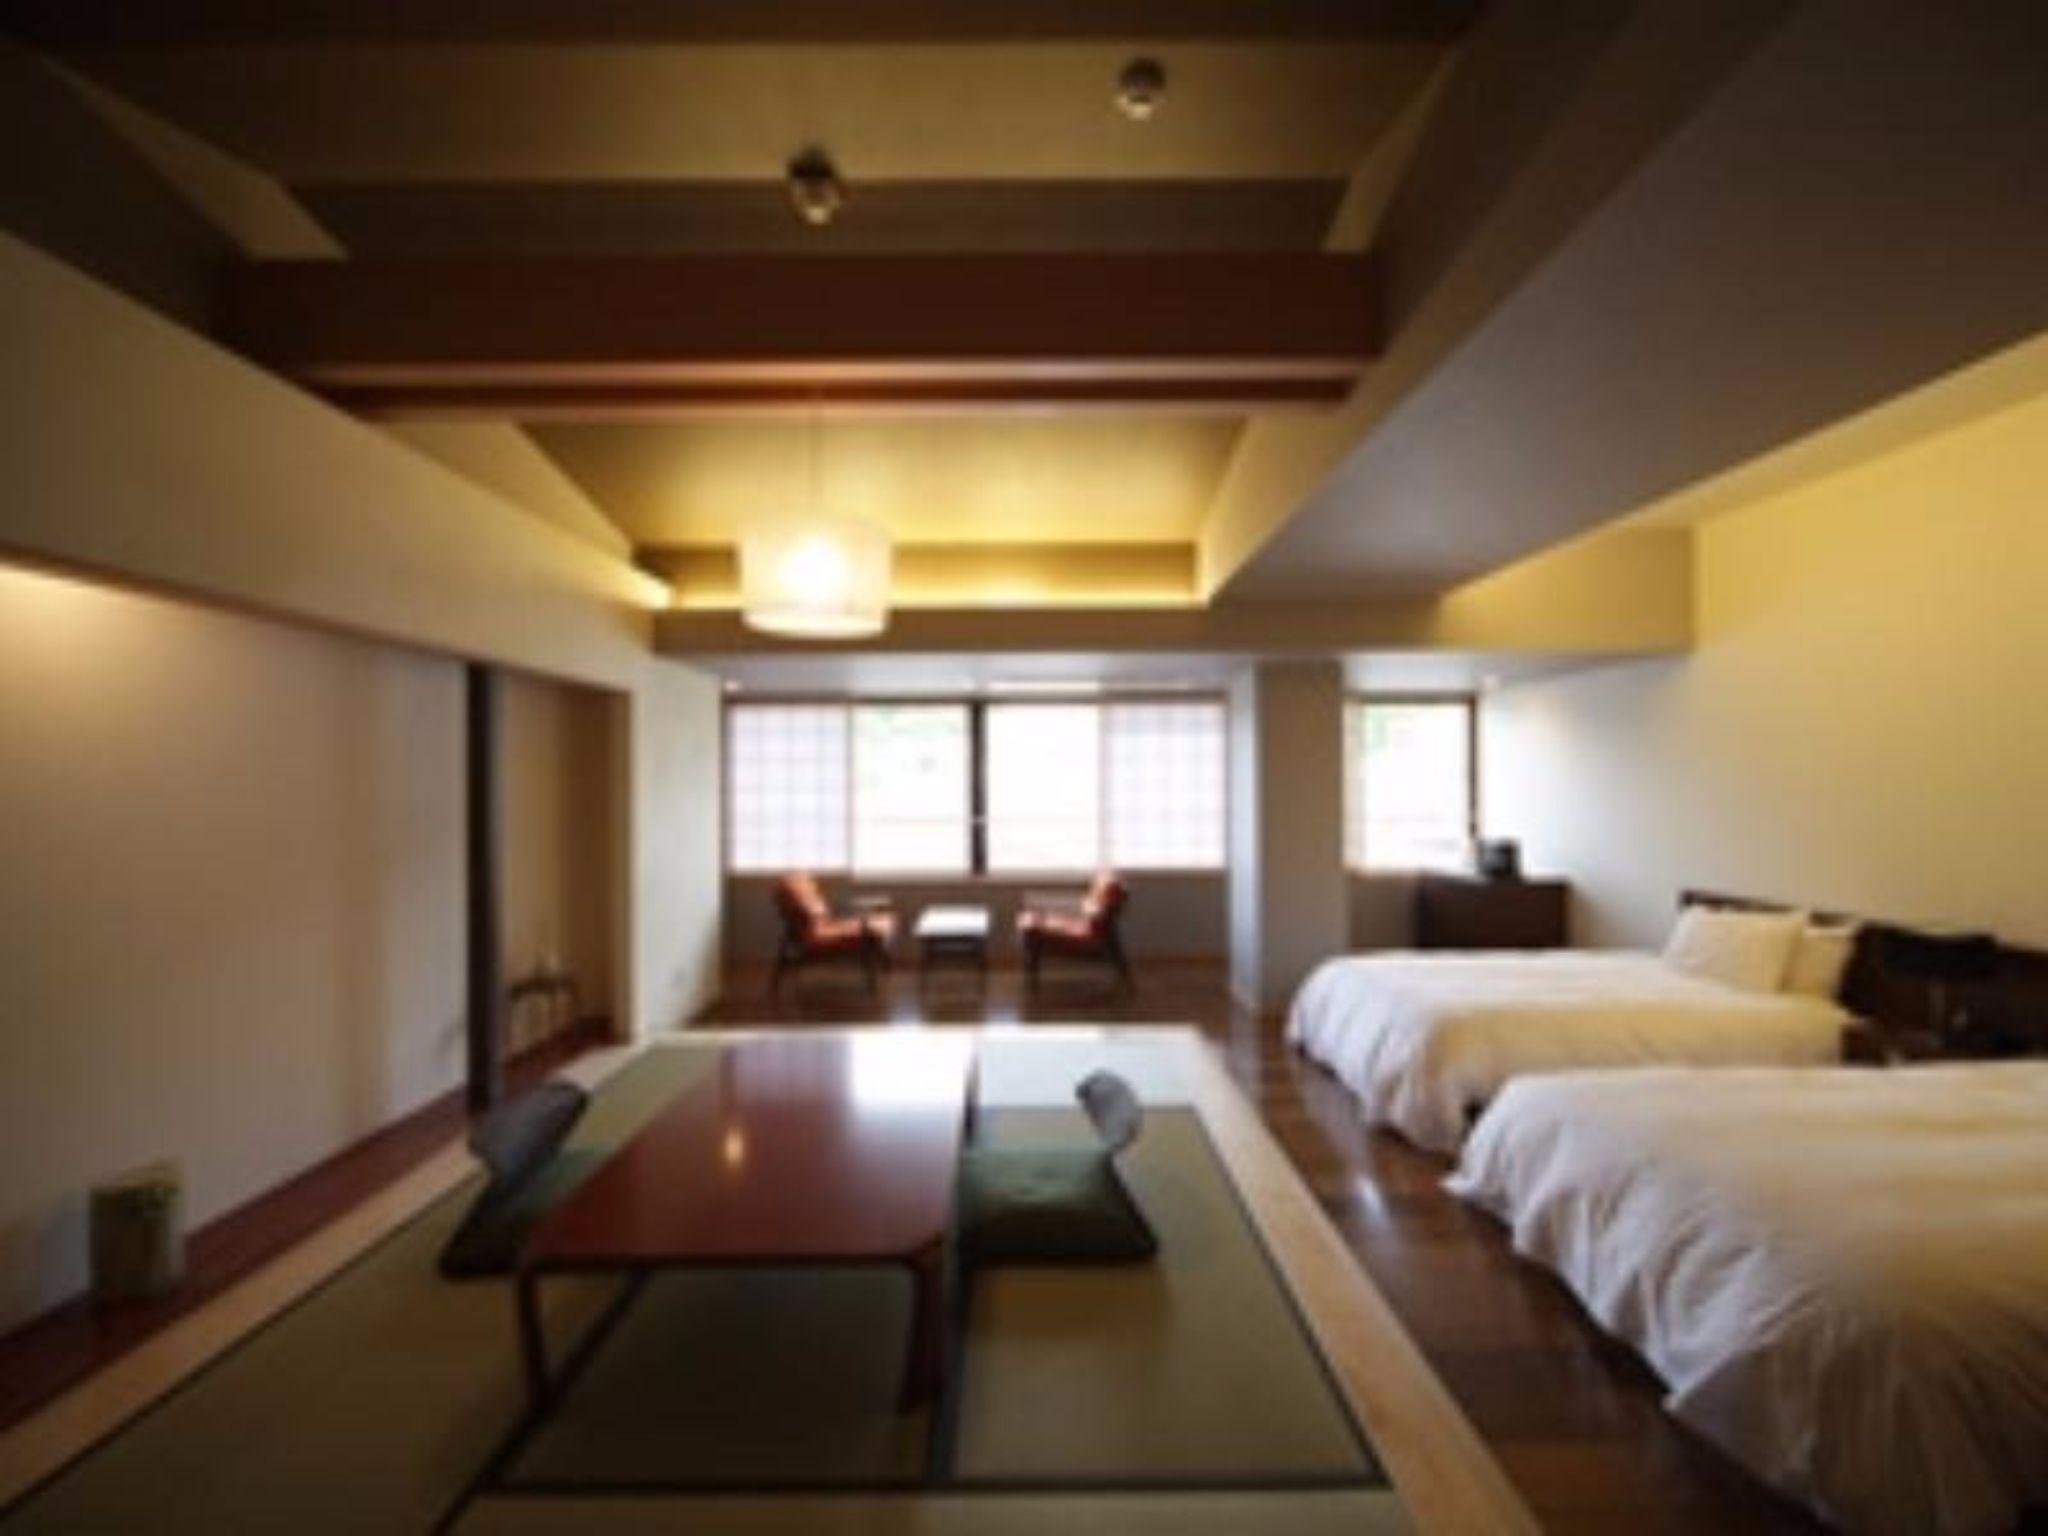 Kamar Jepang Bergaya Barat untuk 4 Orang dengan Kasur Twin dan Pemandangan Gunung – Bebas Asap Rokok (Mountain View Japanese Western Style Room for 4 People with Twin Bed - Non-Smoking)